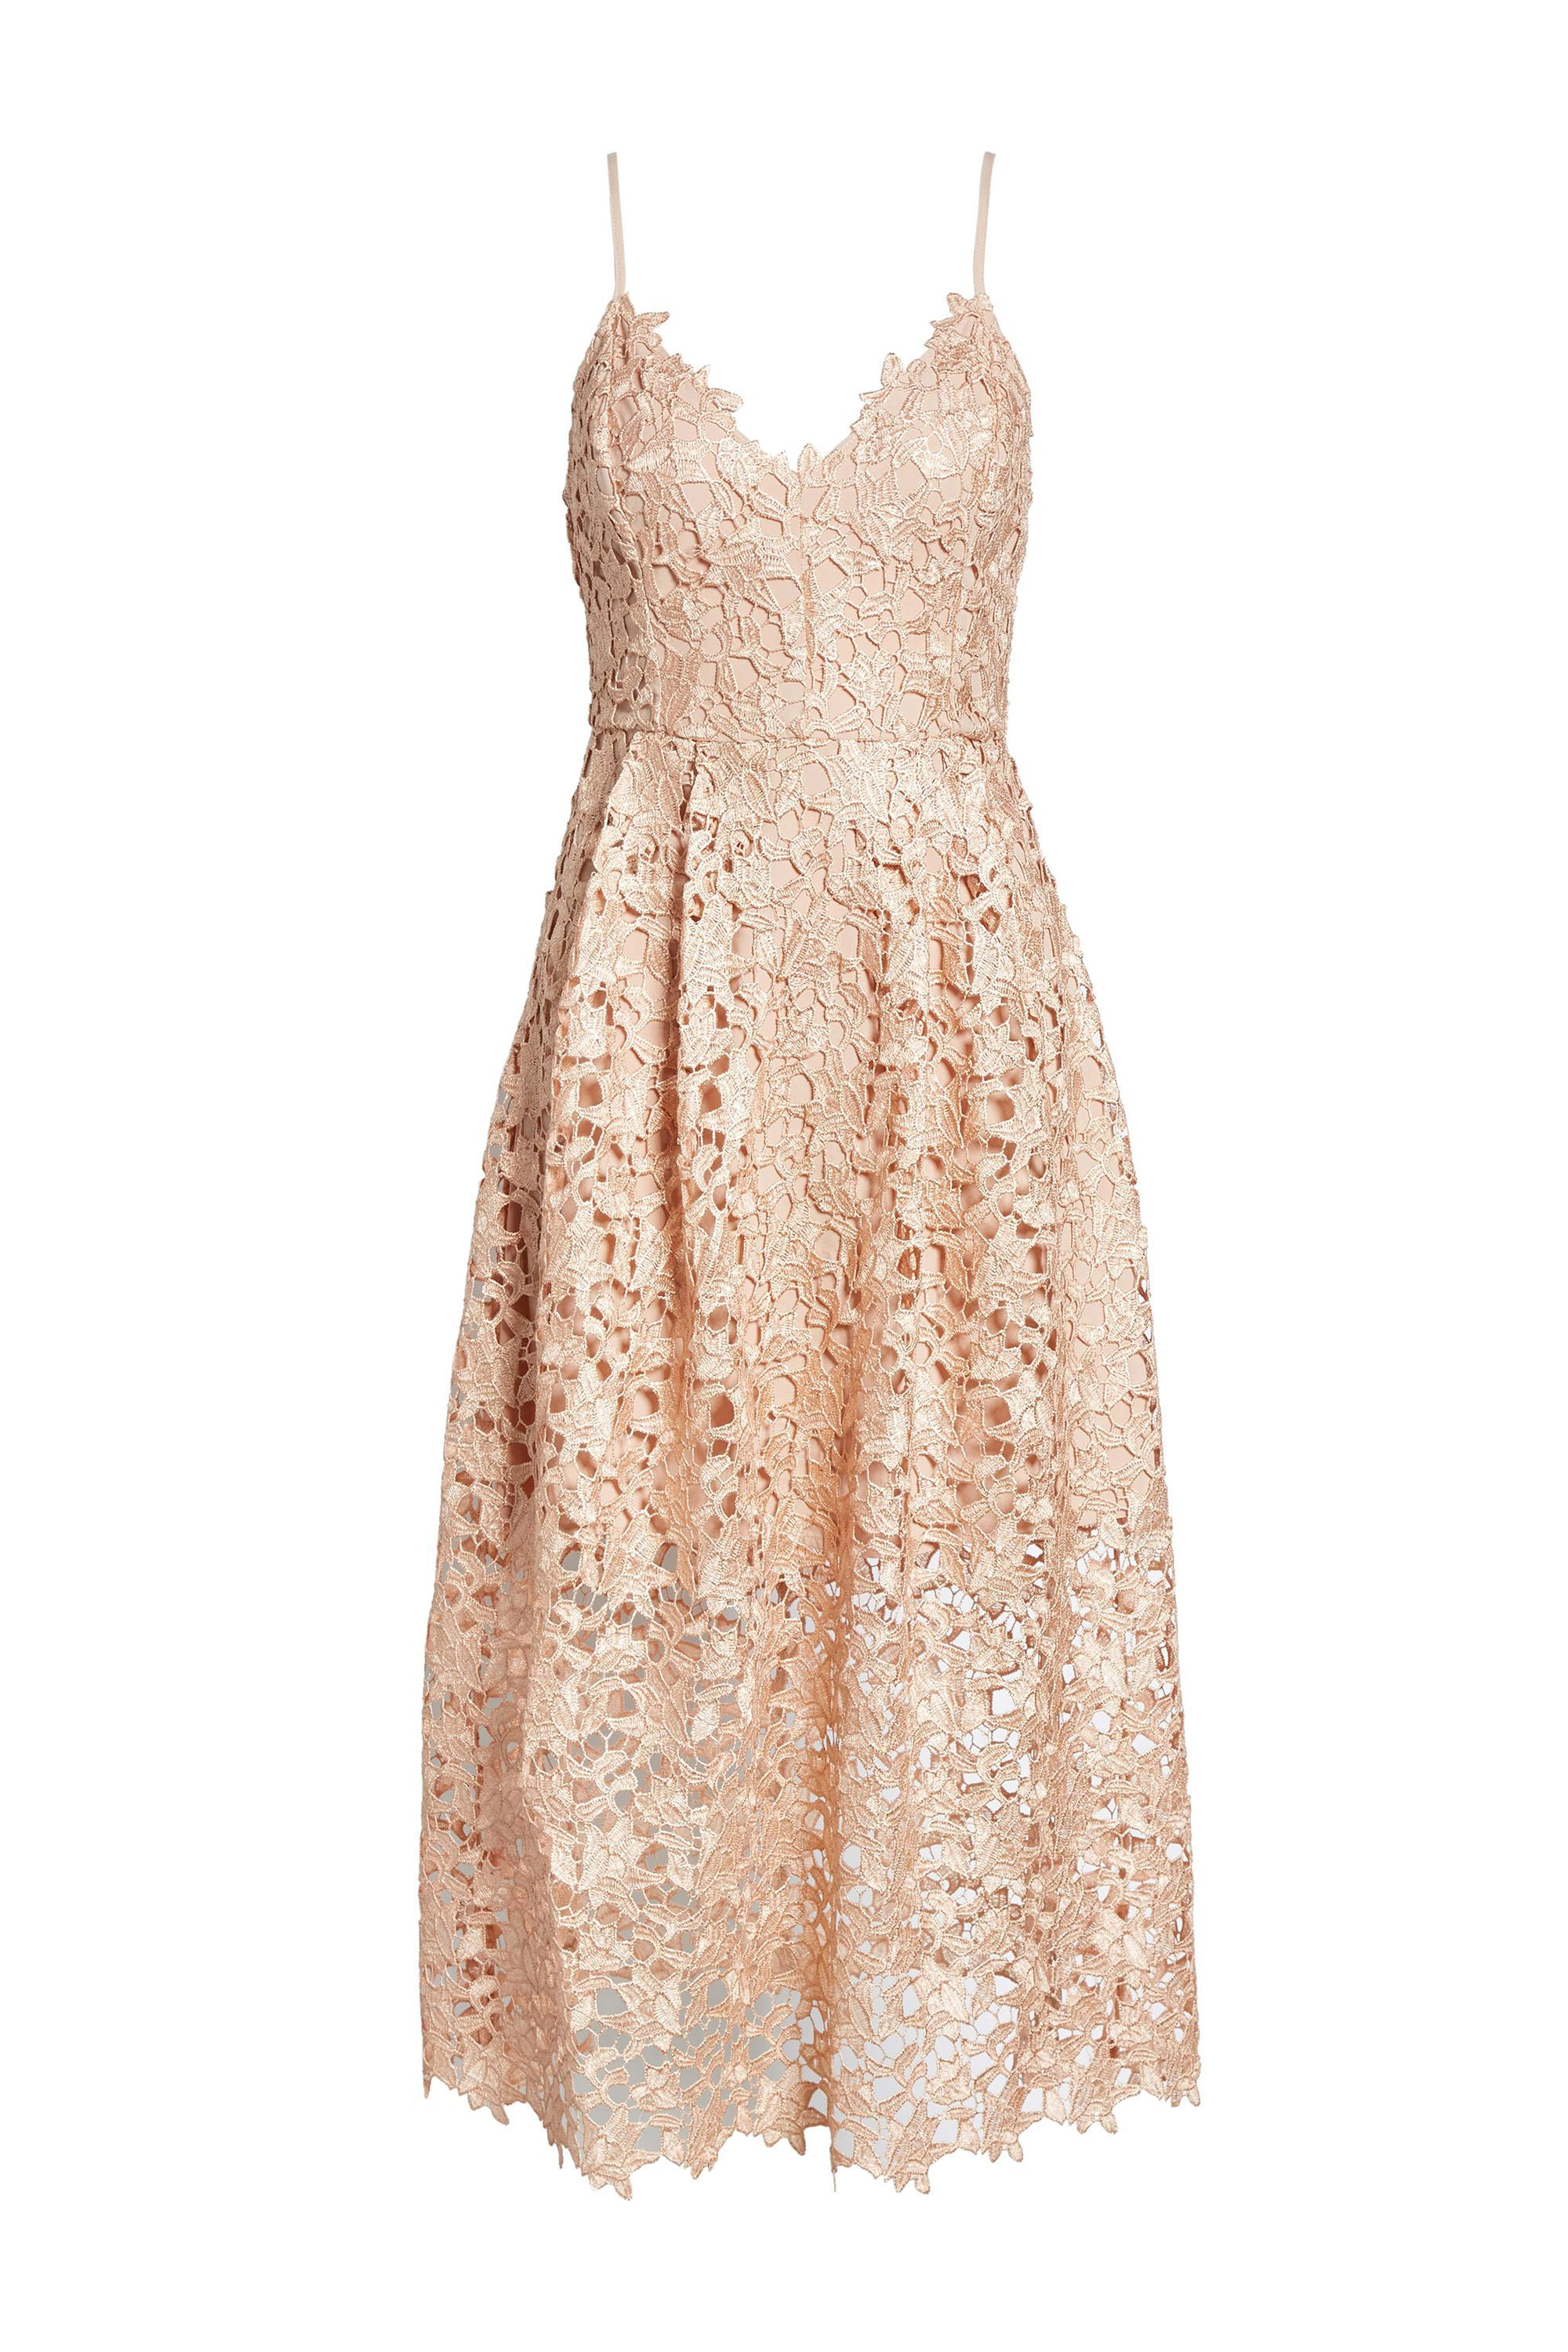 Lace Midi Dress Astr the Label nordstrom.com $53.40 SHOP NOW It's not white, okay?